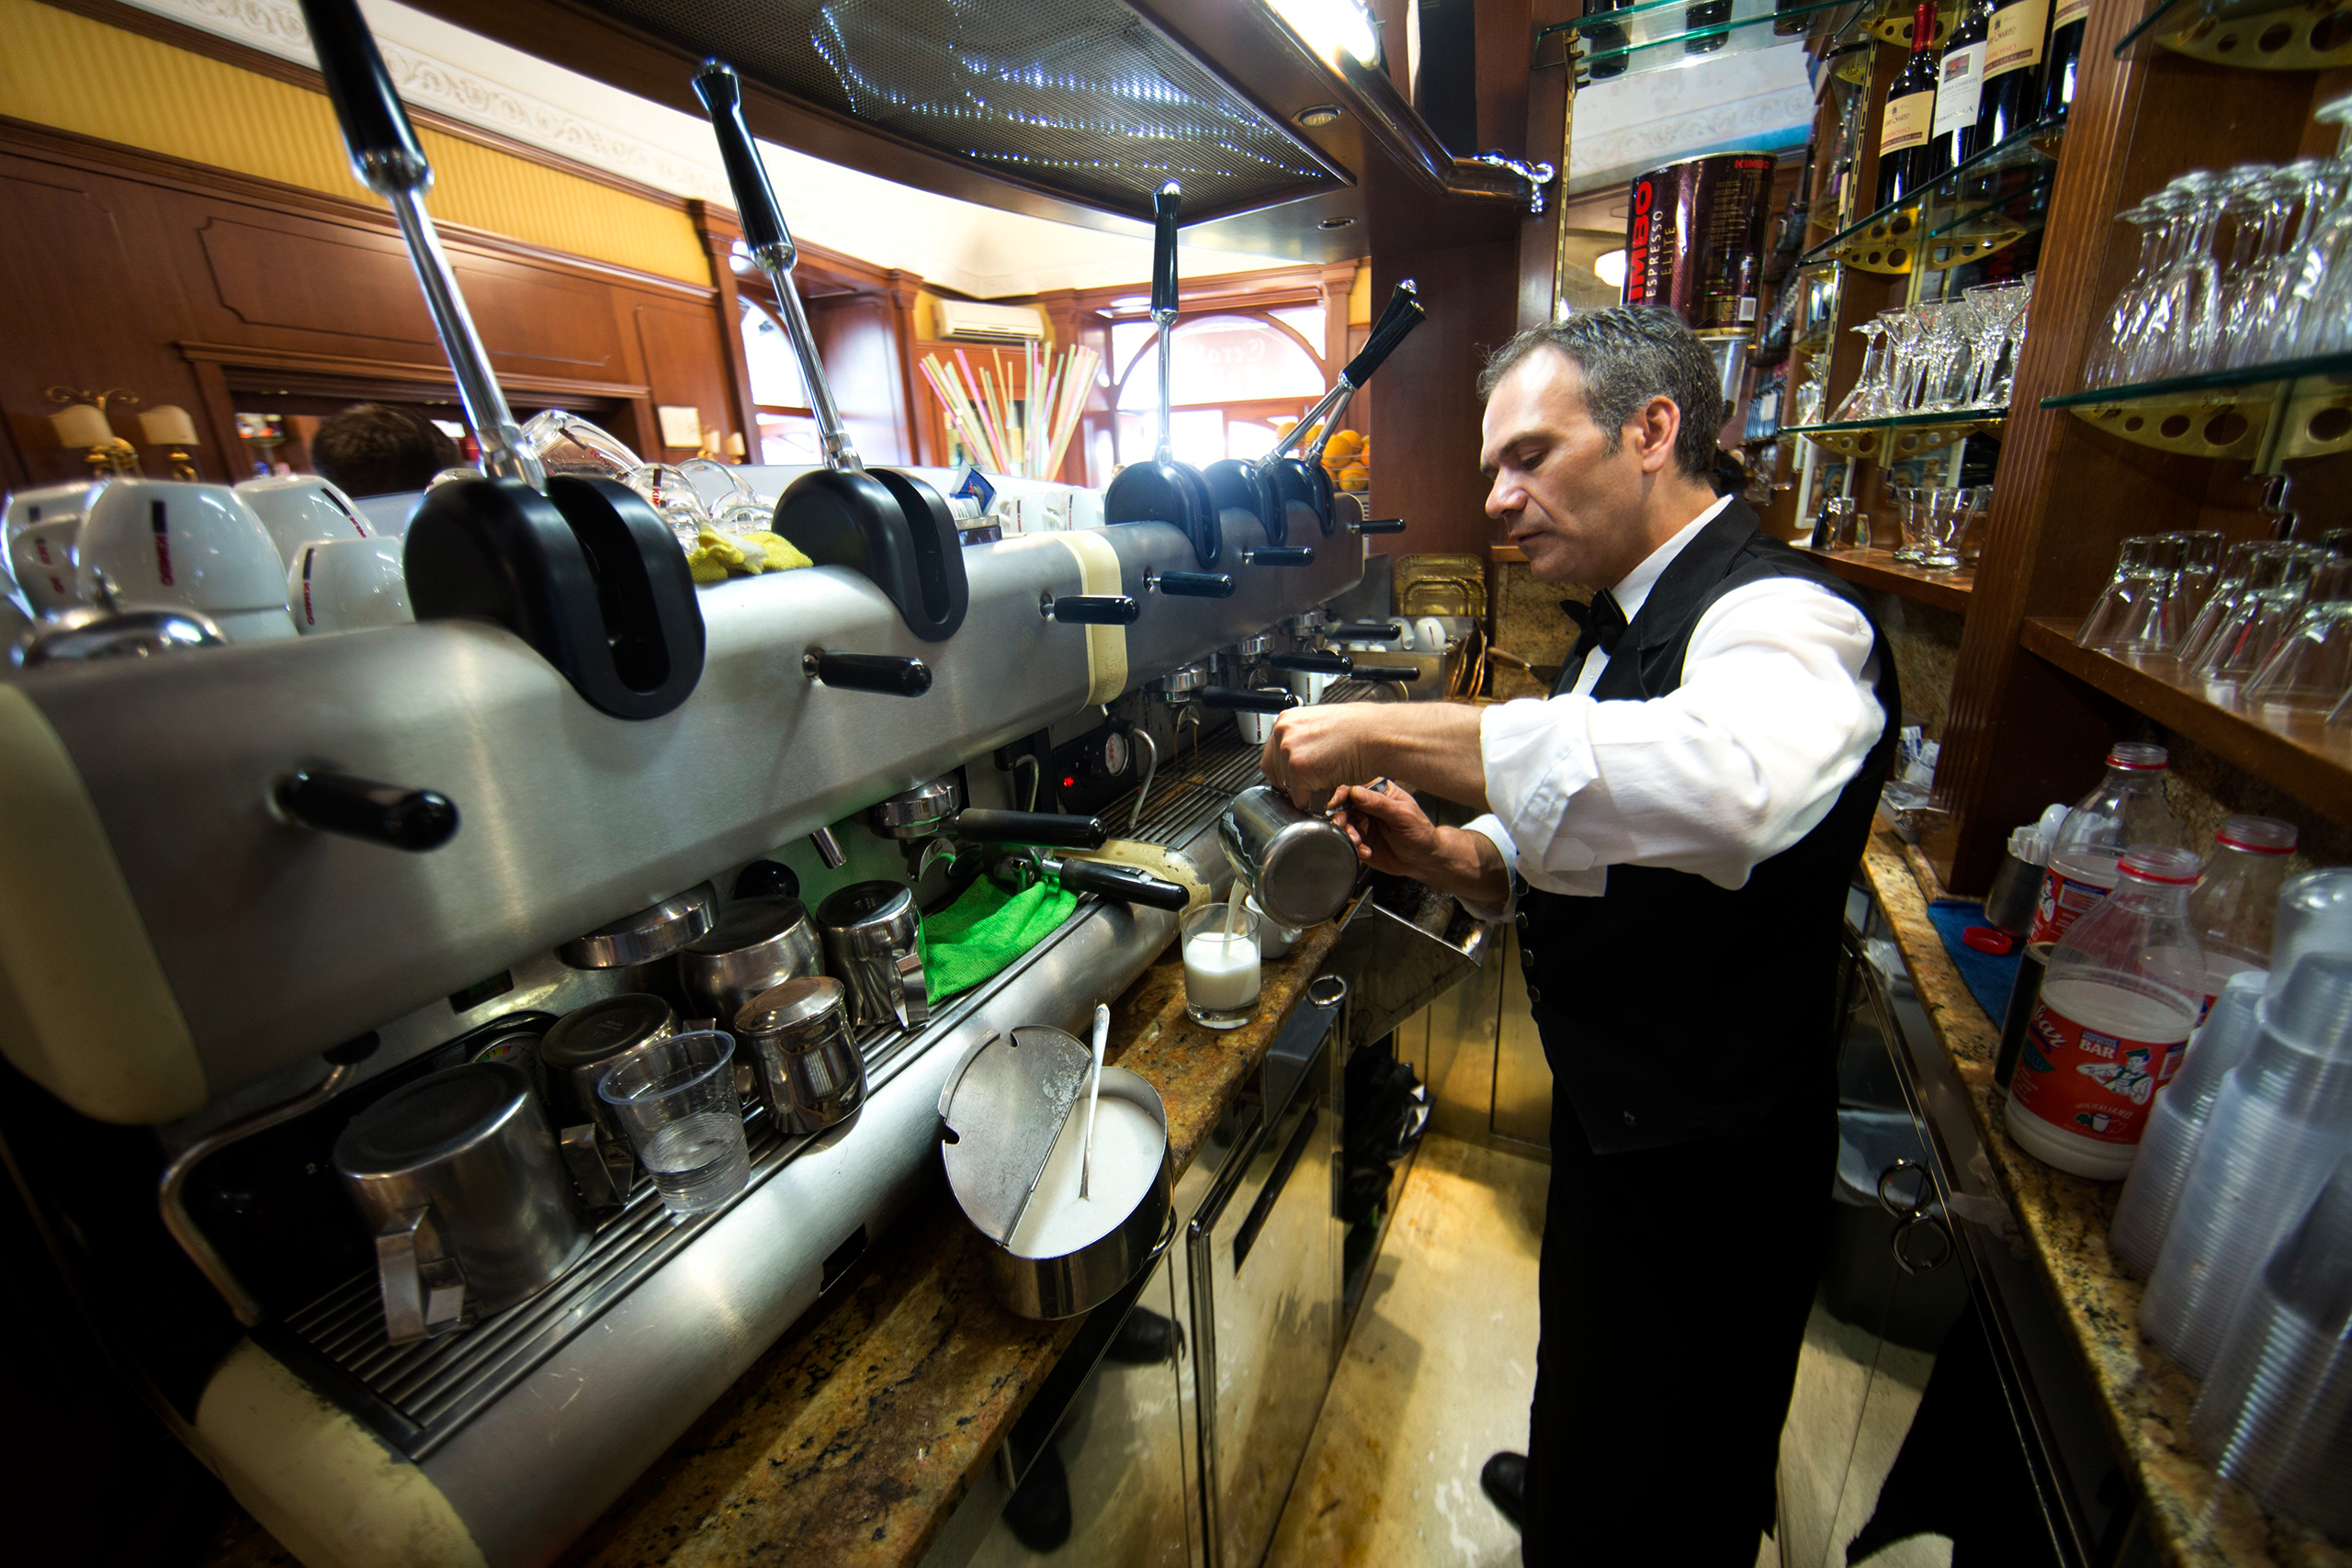 A senior coffee maker at Garaldi Caffe, located at Piazza Garita in Naples, Italy, Oct. 1, 2014.